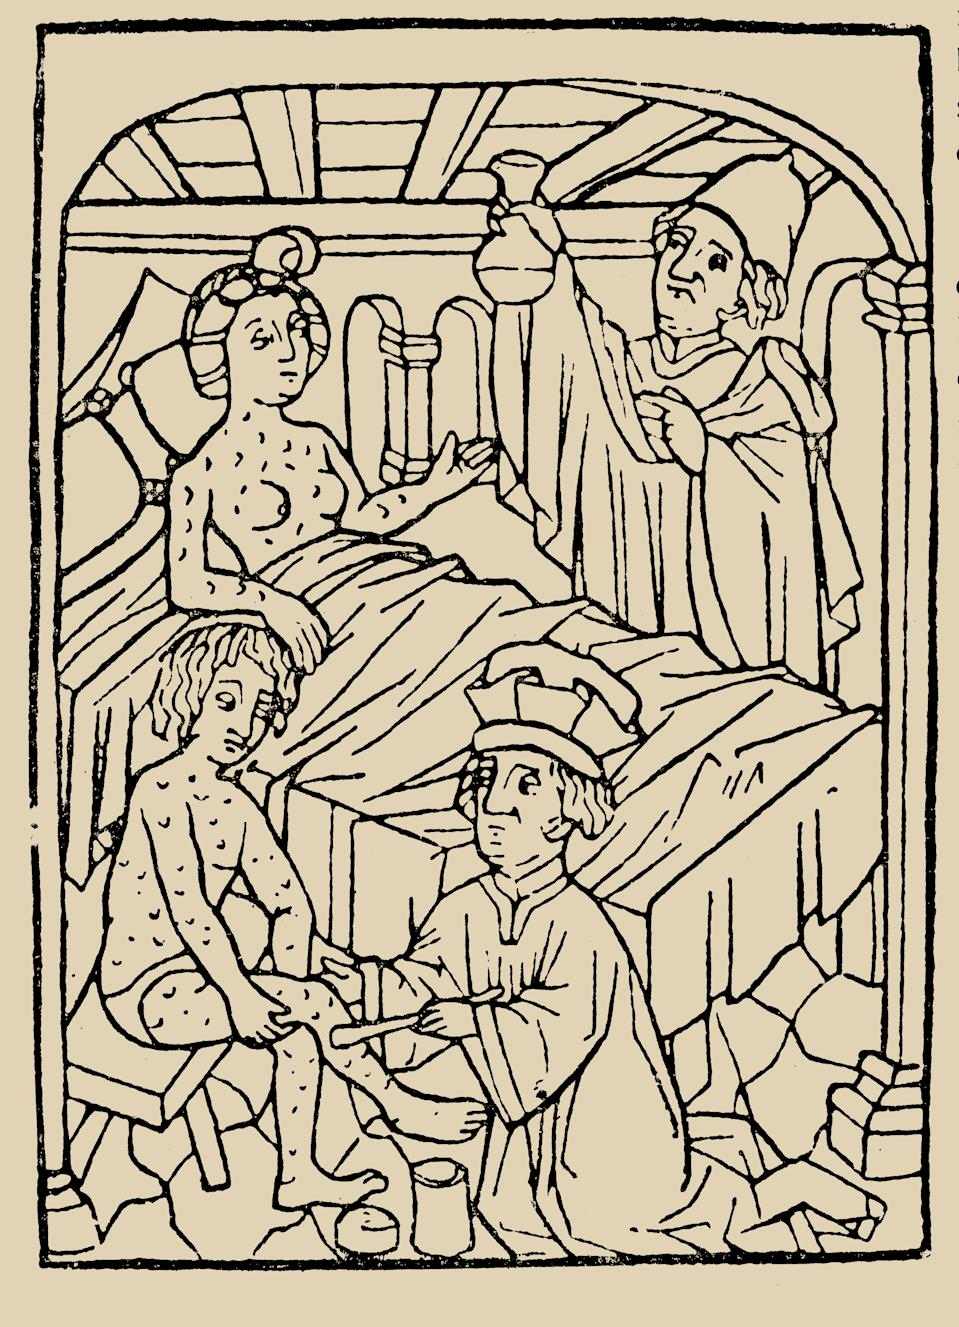 Syphilis treatment Treatment with ointments (mercury). From. (Photo by Fine Art Images/Heritage Images/Getty Images)